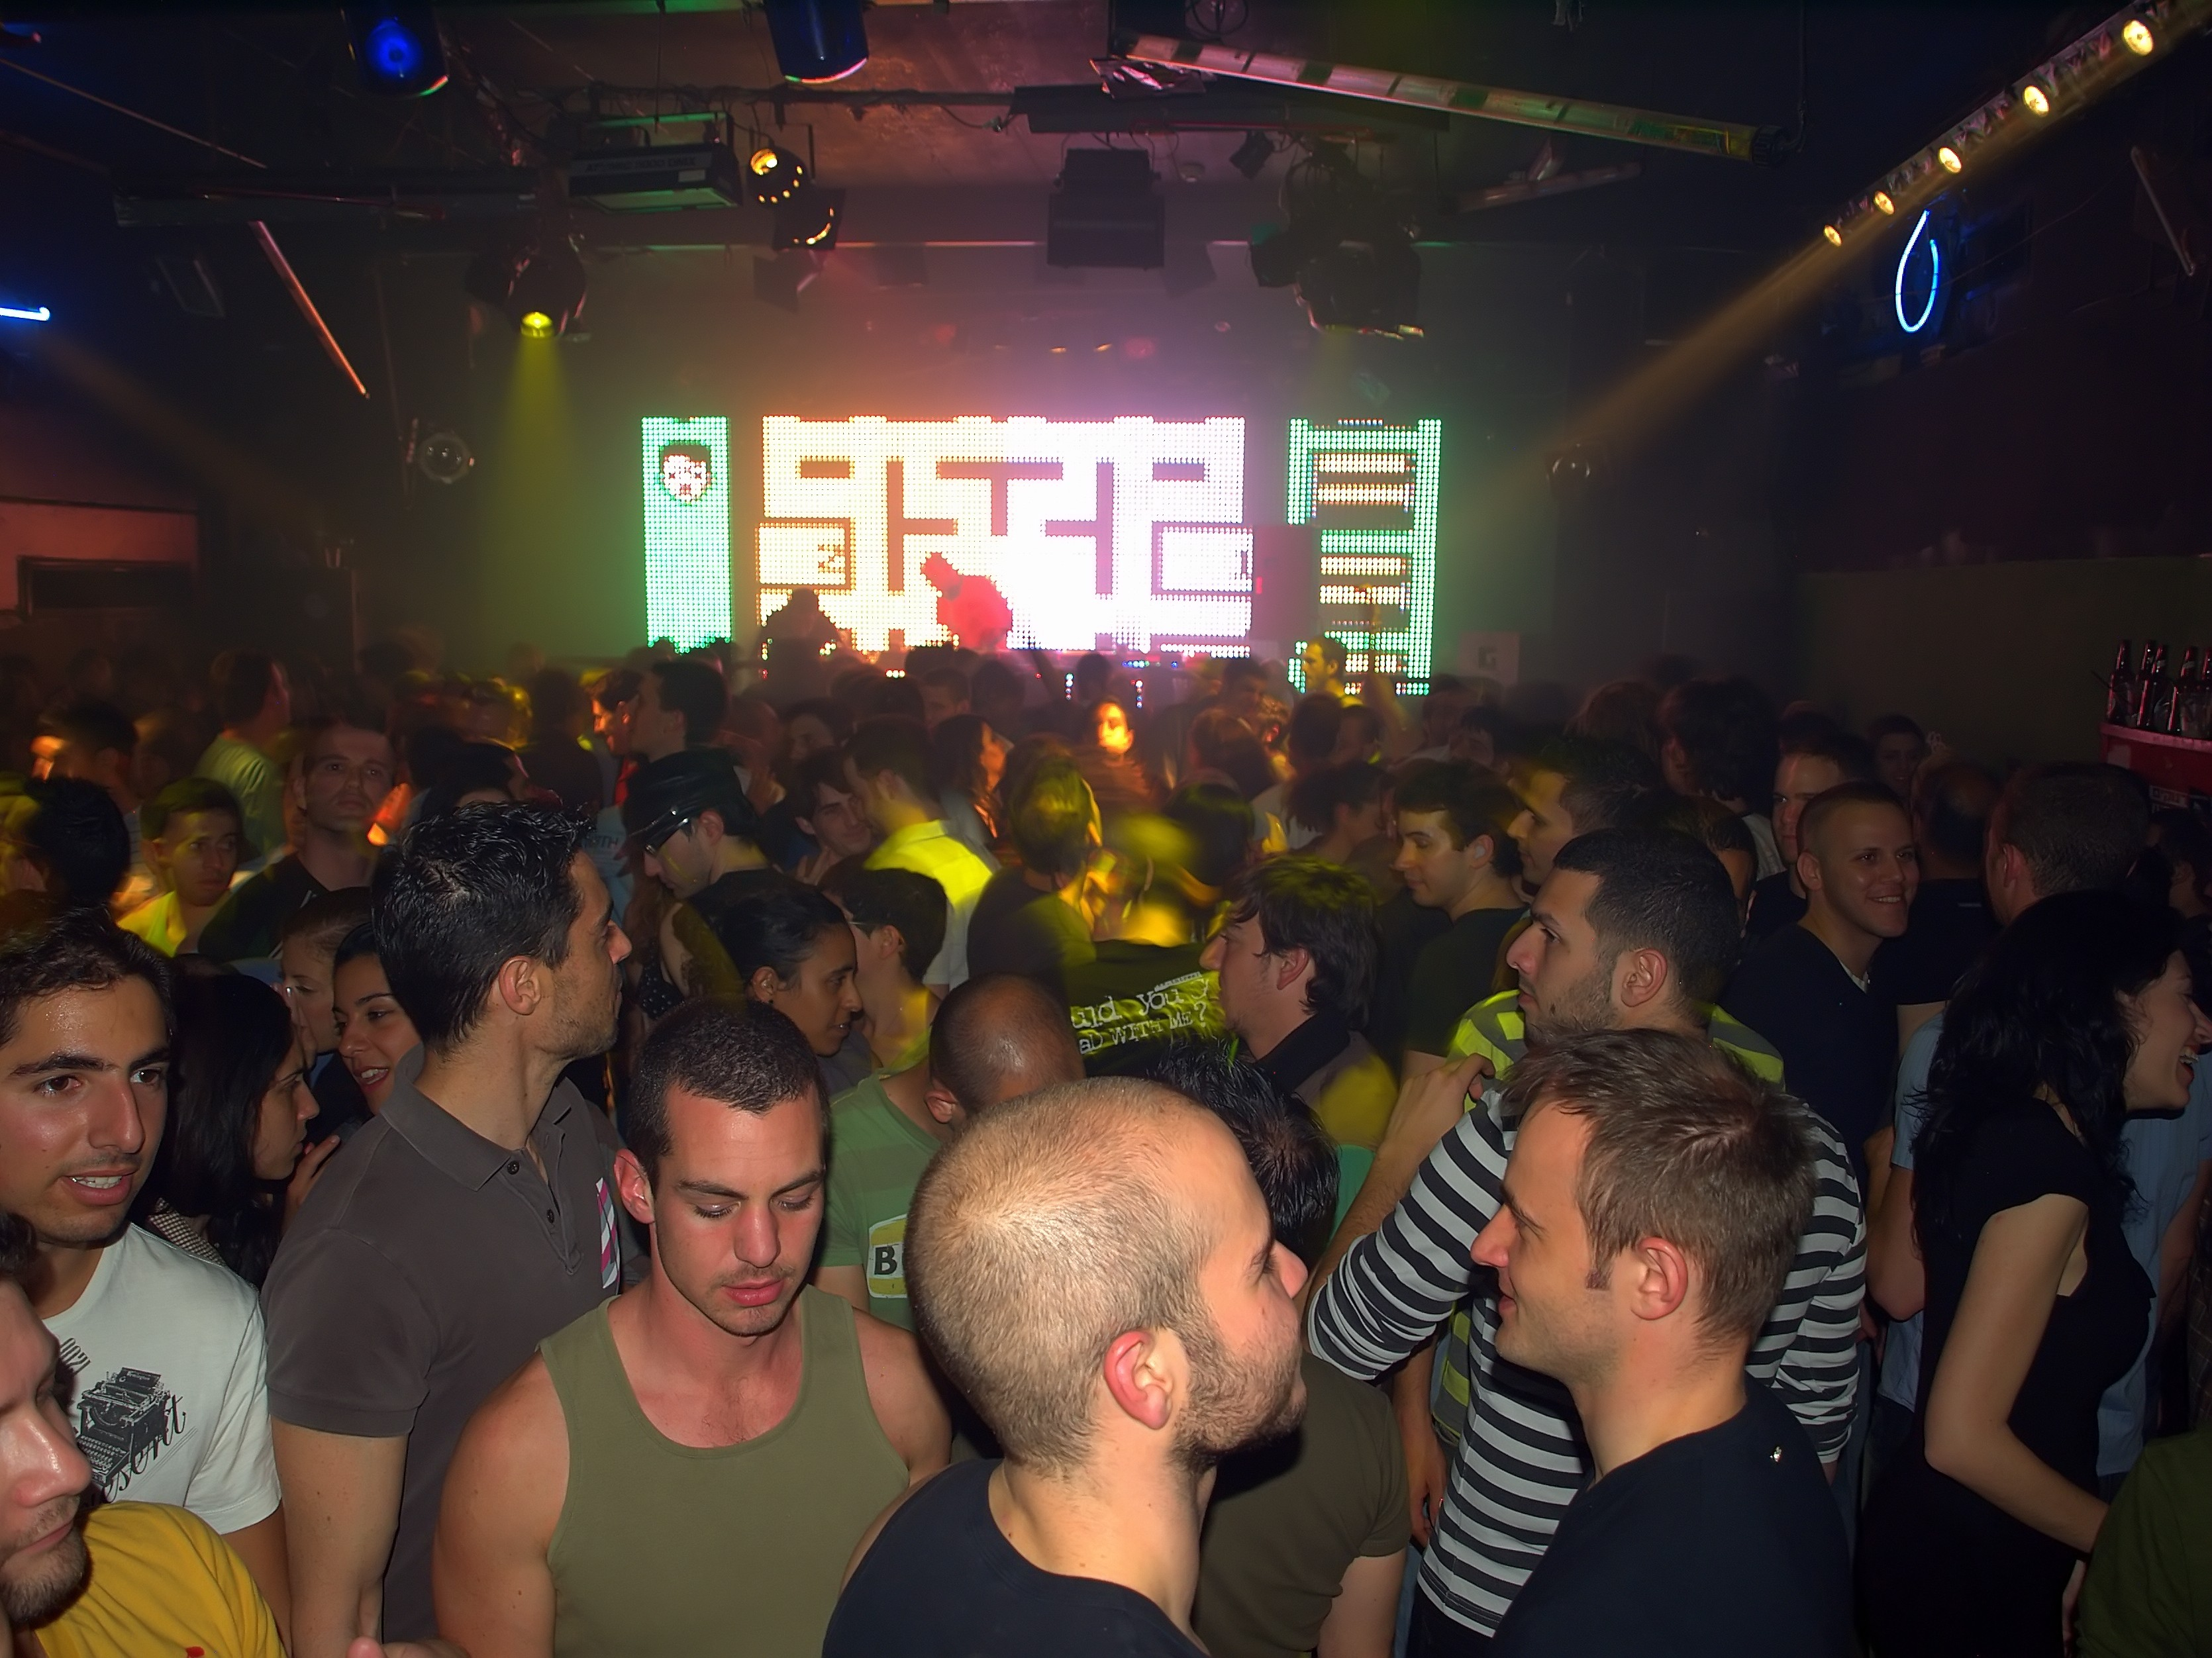 Gay clubs in athens georgia